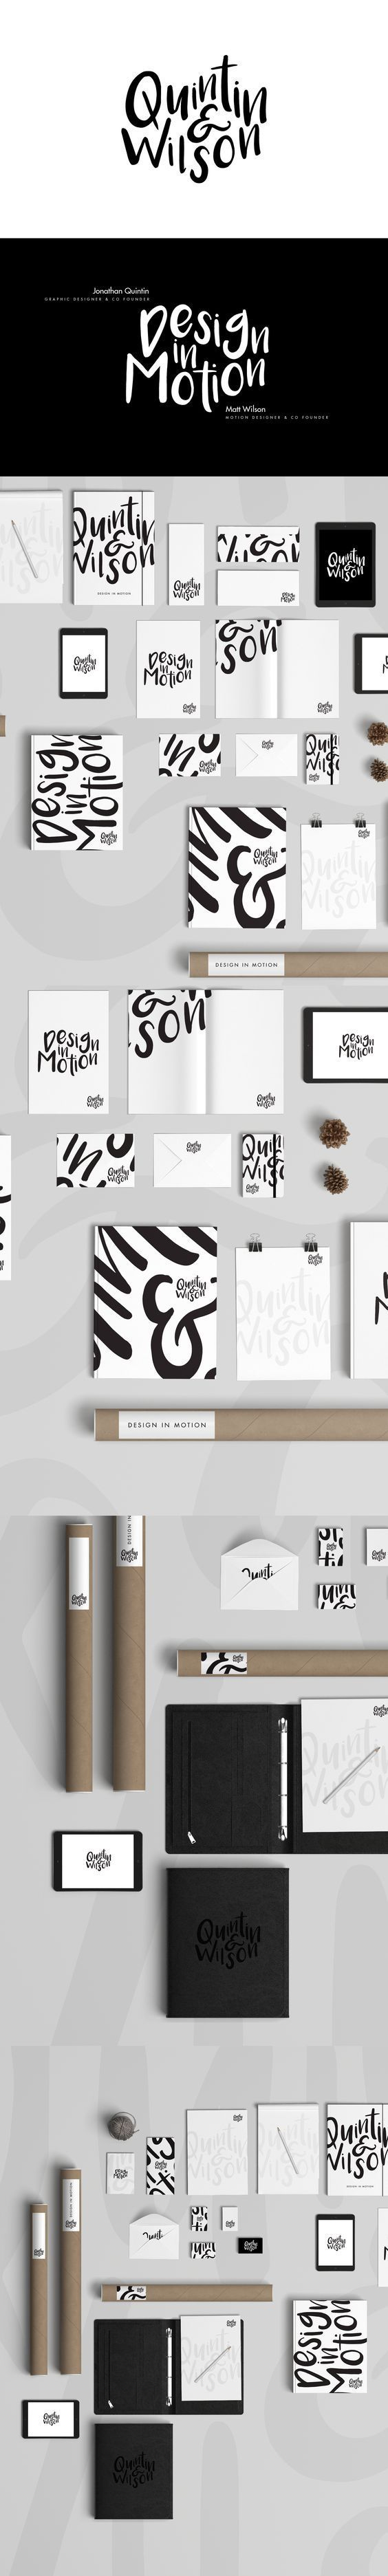 12 Cool Branding and Identity Designs for your Inspiration